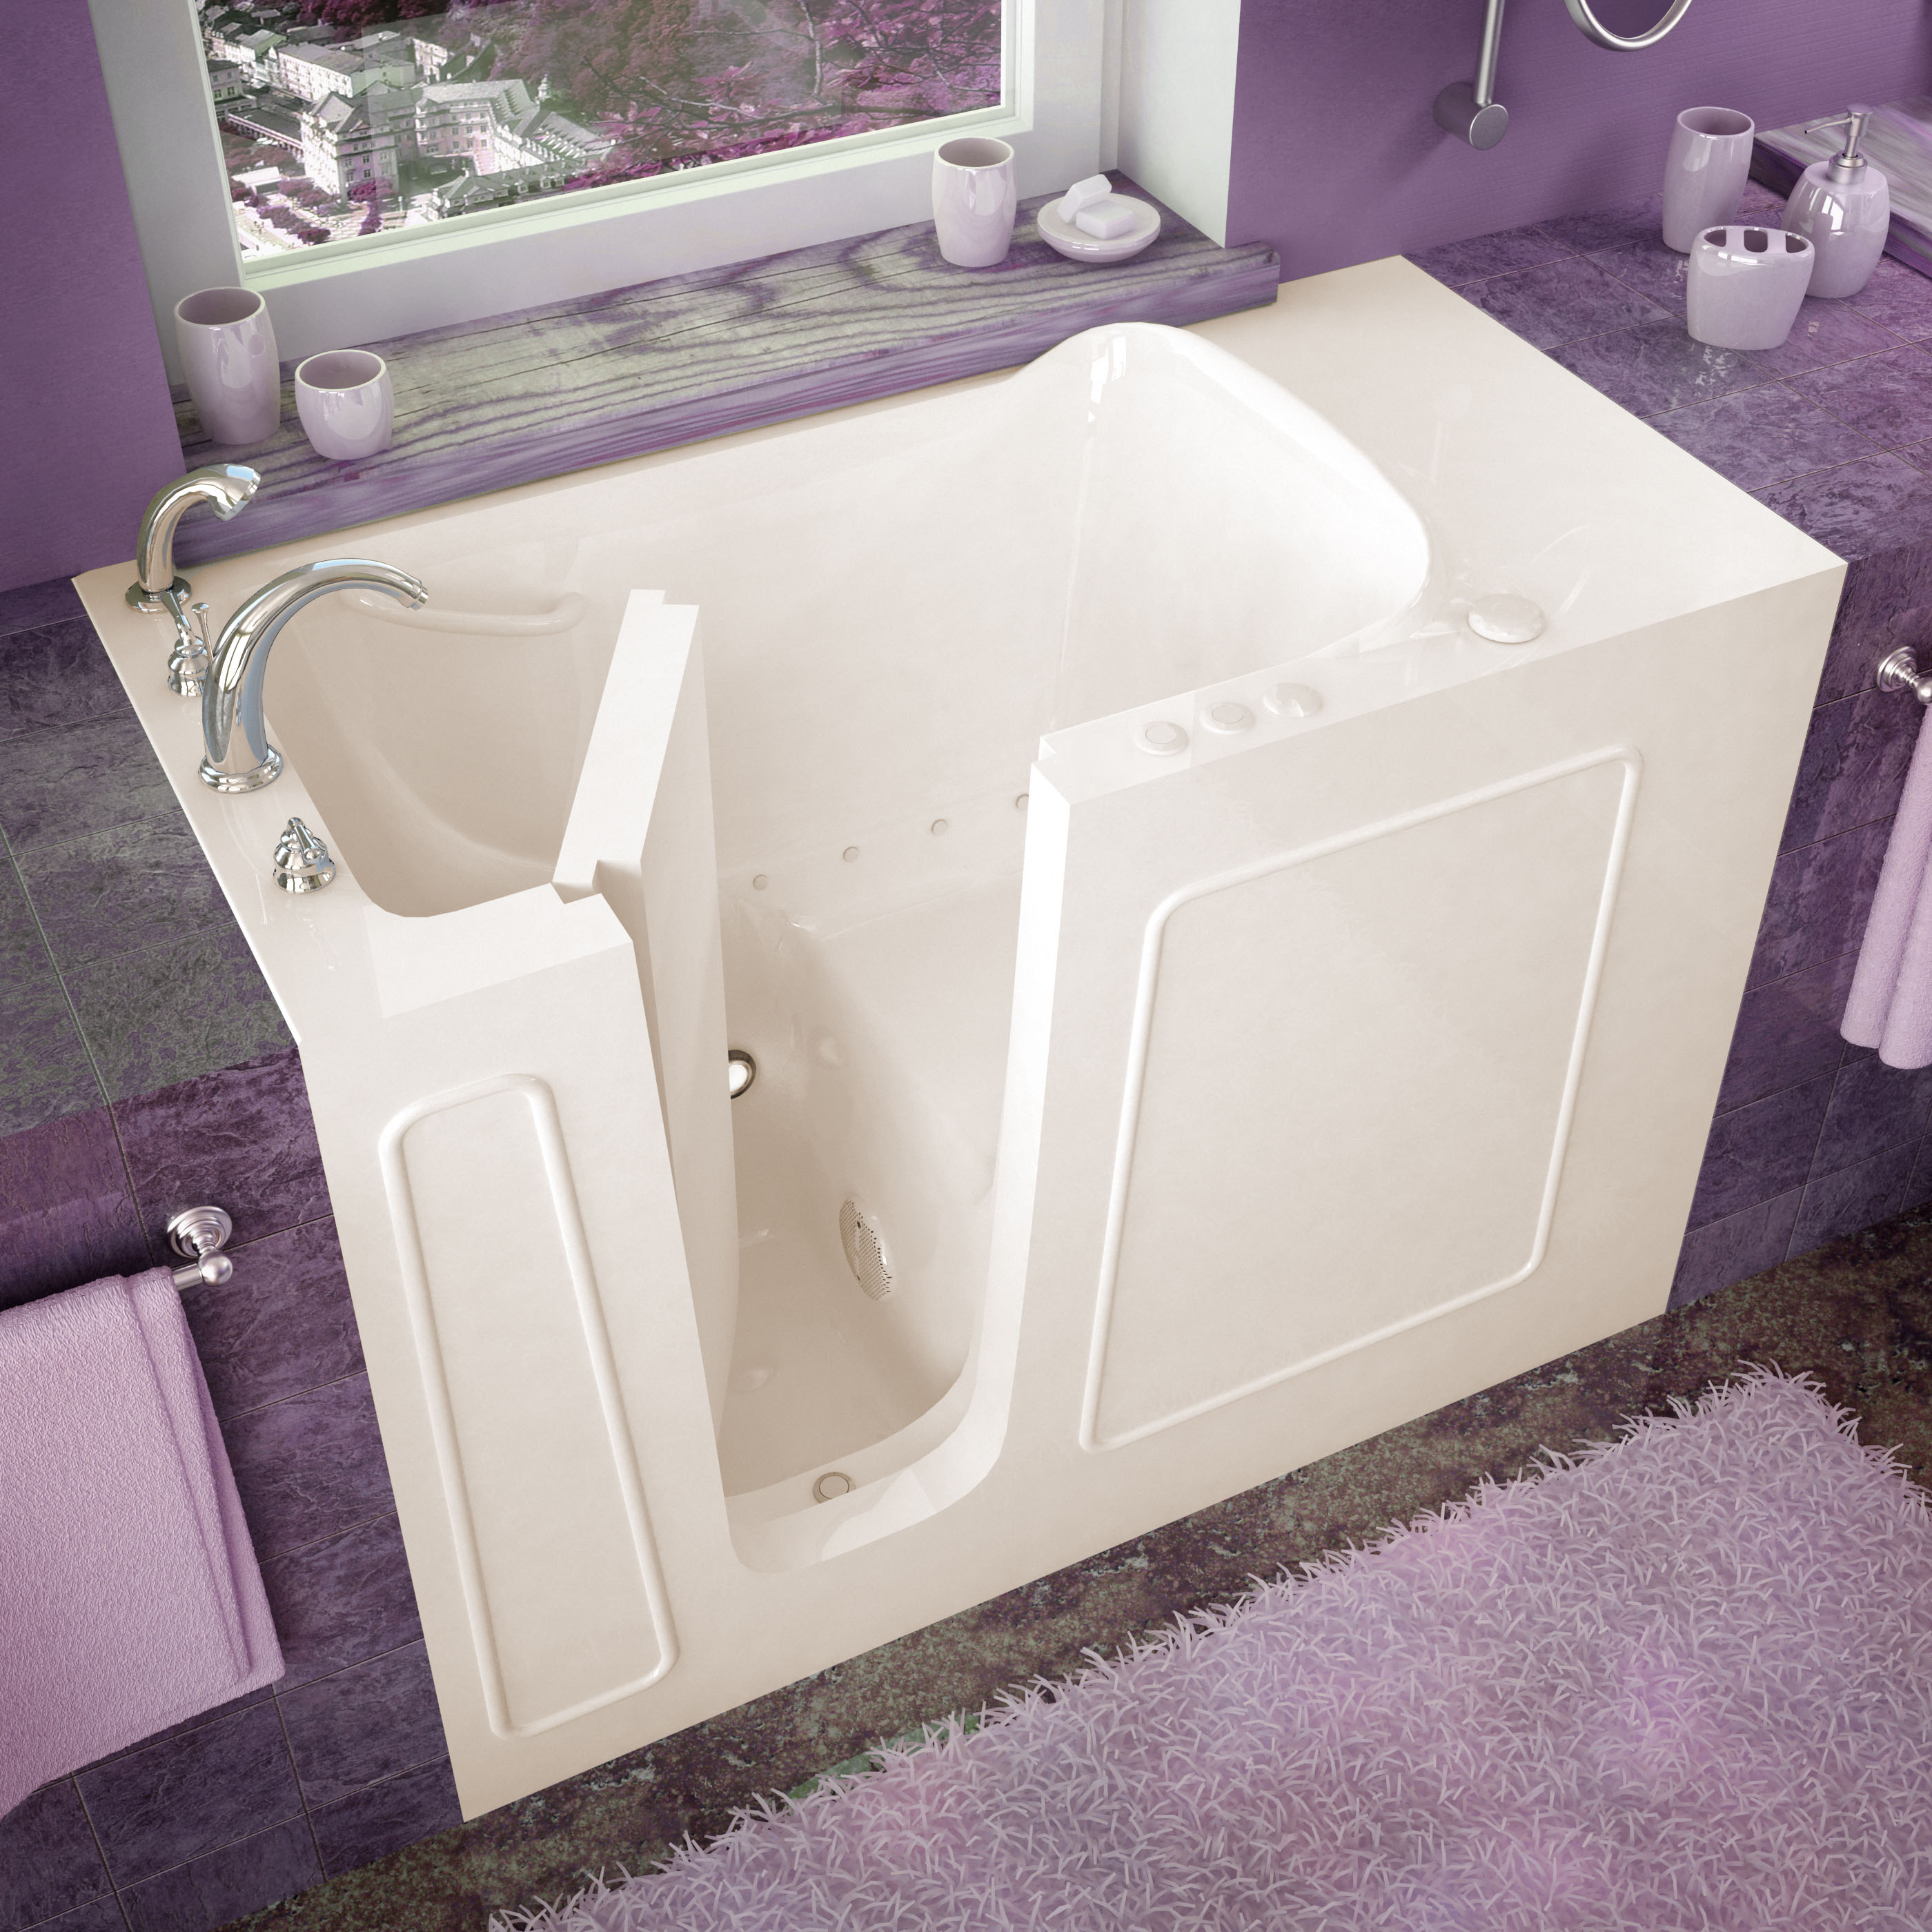 26x53 Left Drain Biscuit Air Jetted Walk-In Bathtub